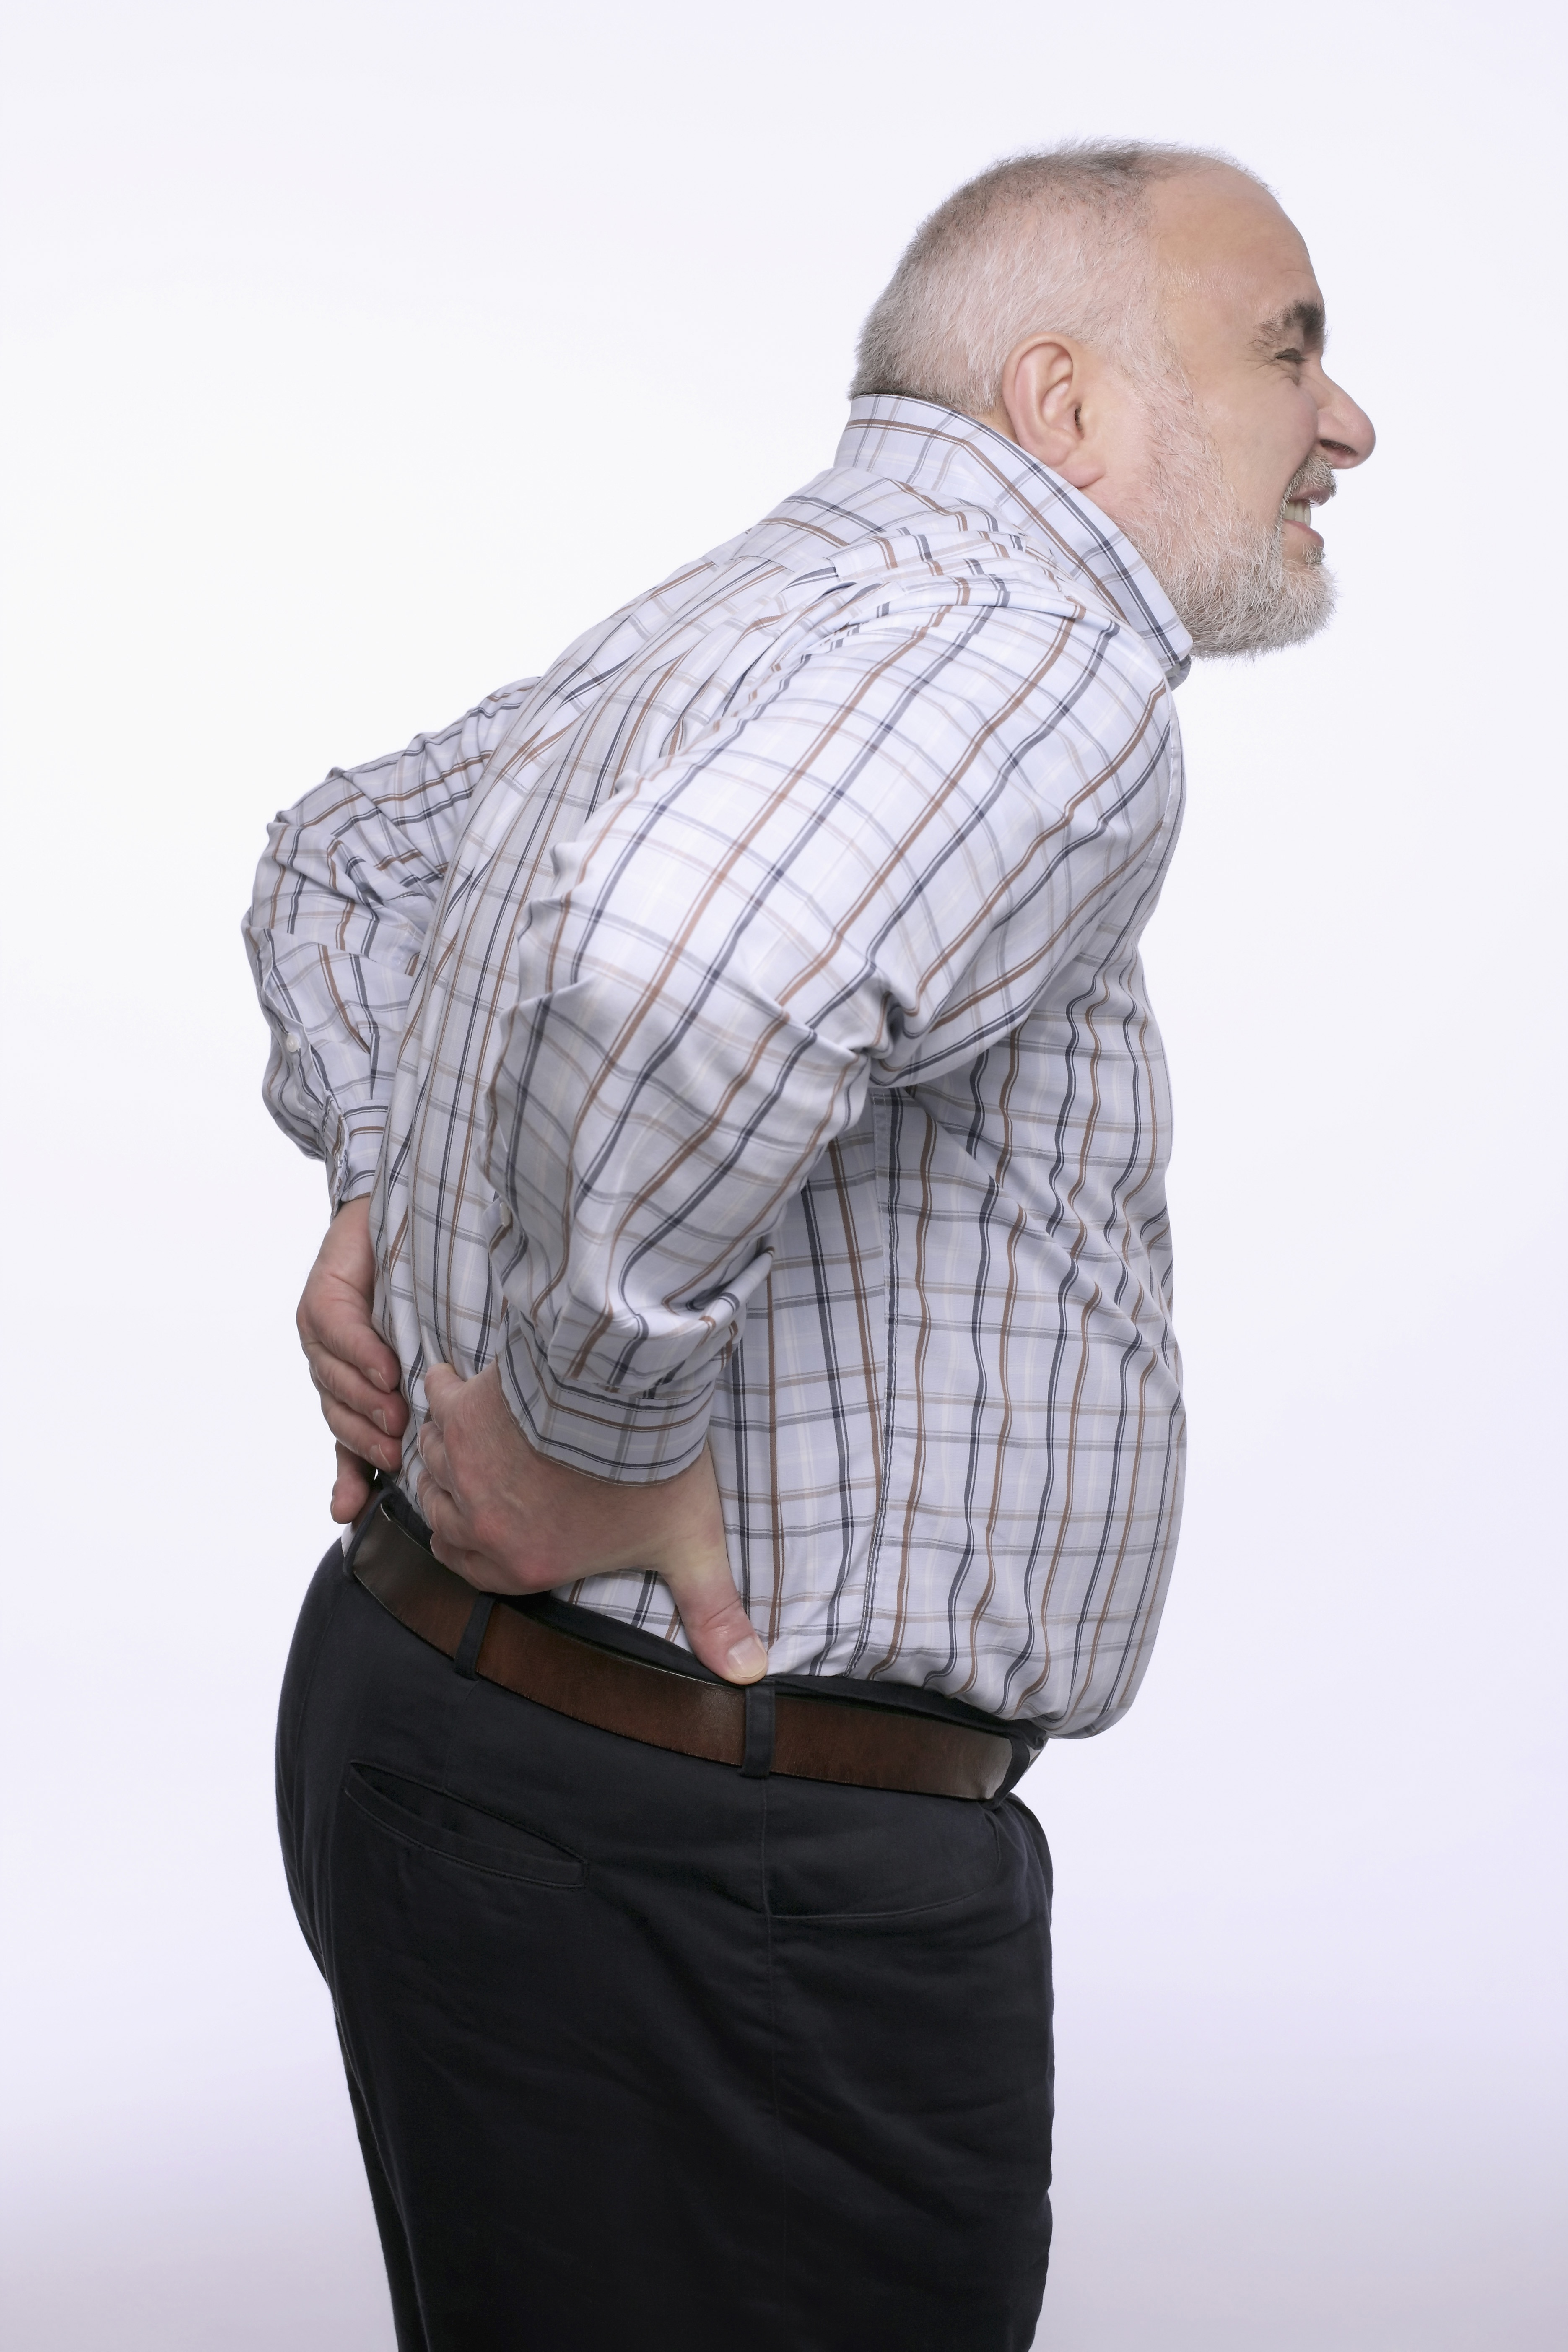 Bulging discs or herniated discs can cause back pain like this man is experiencing as he holds his lower back.